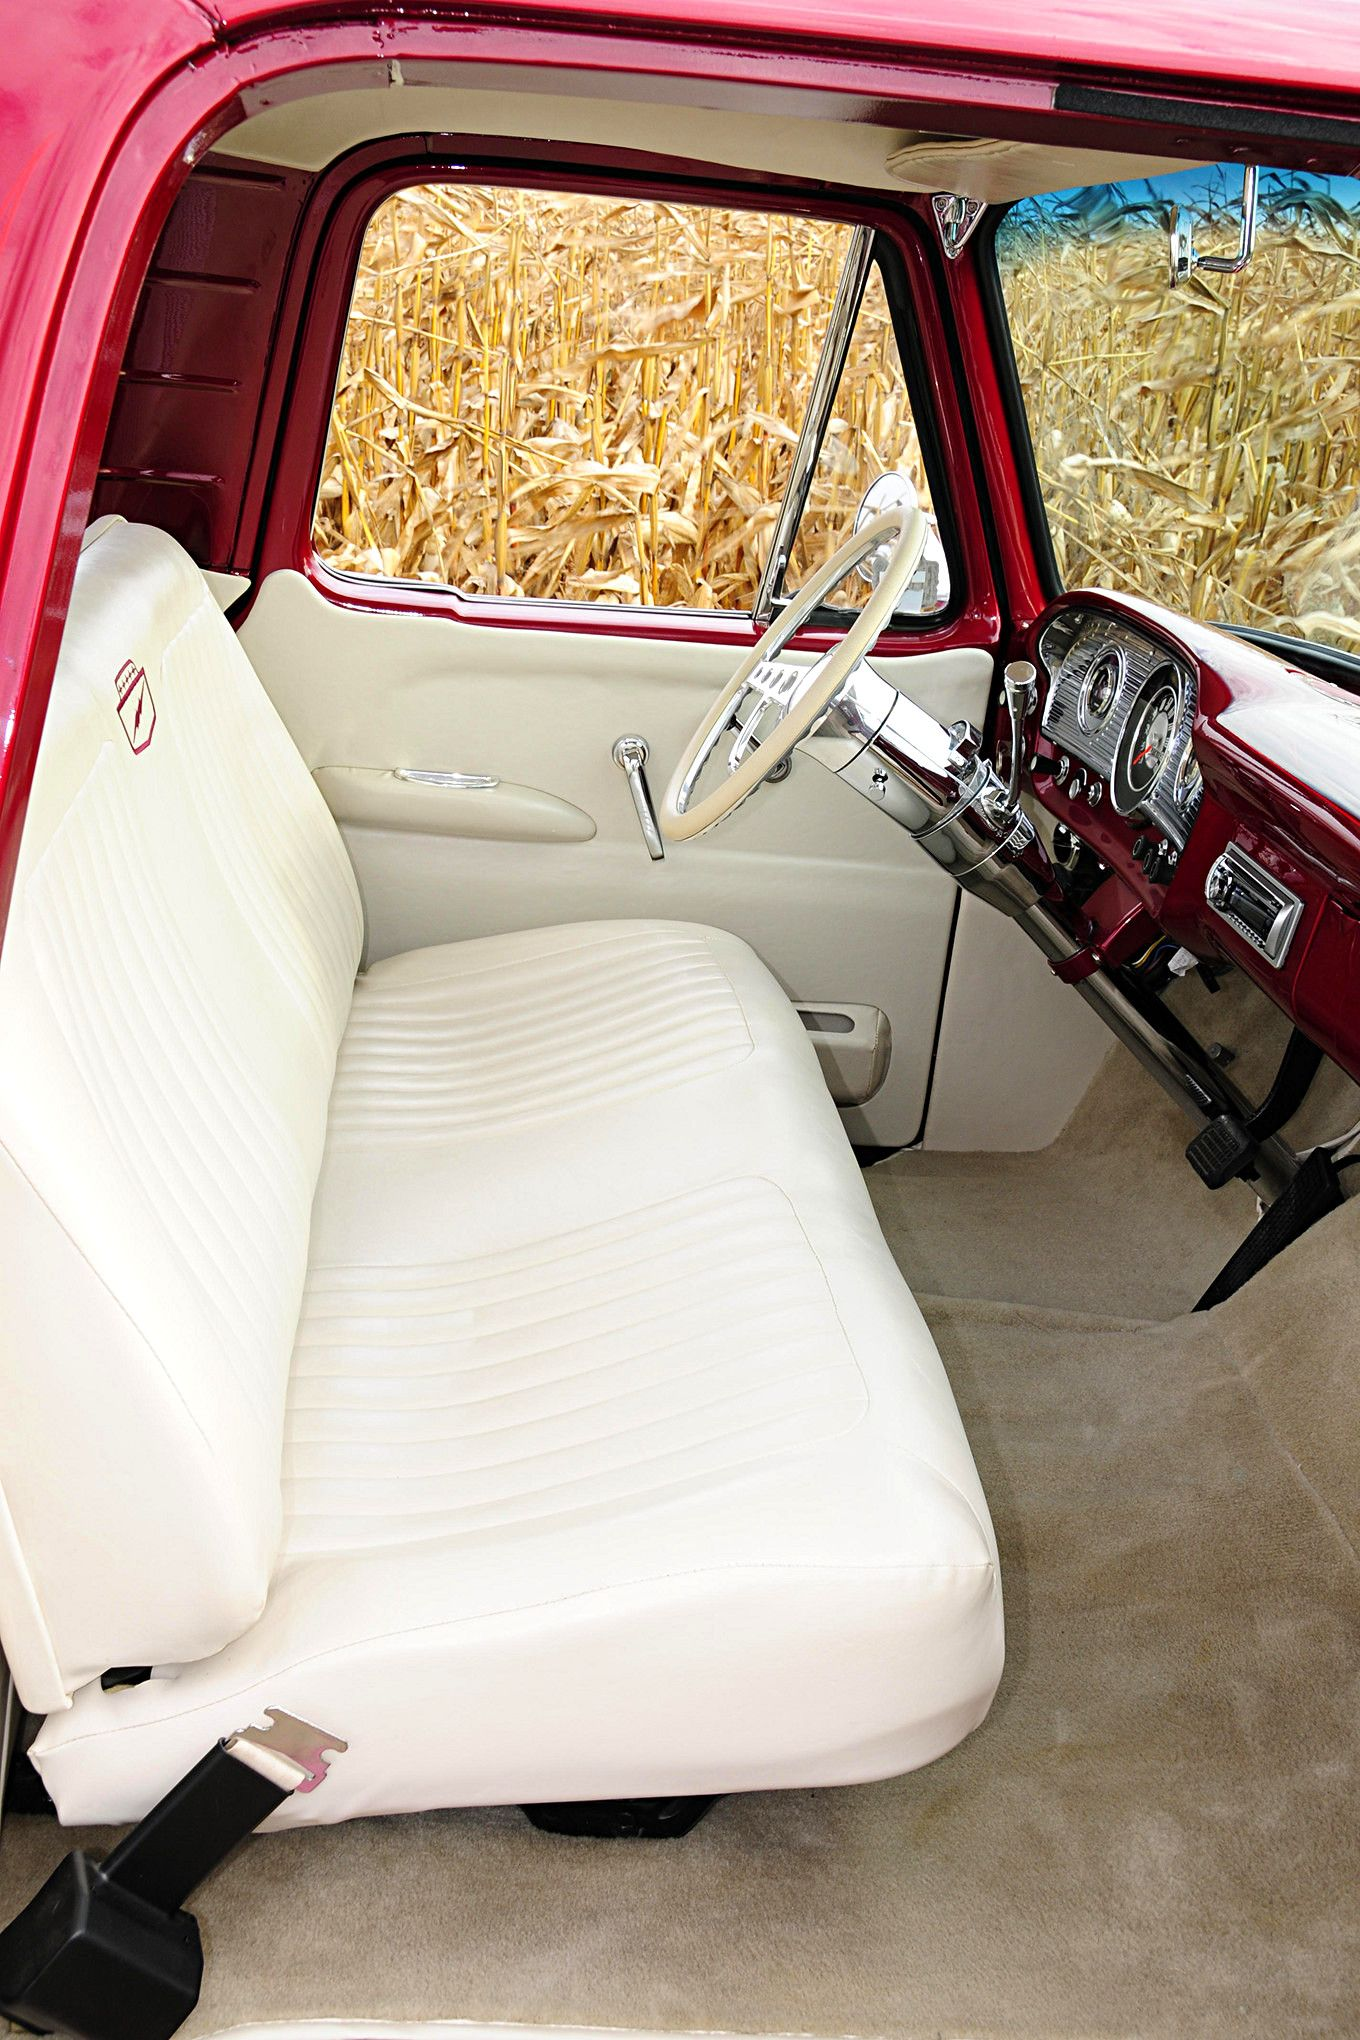 The Wood Family S 1961 Ford Unibody Combines Classic Looks With Hot Rod Style Ford Trucks Classic Ford Trucks Classic Chevy Trucks